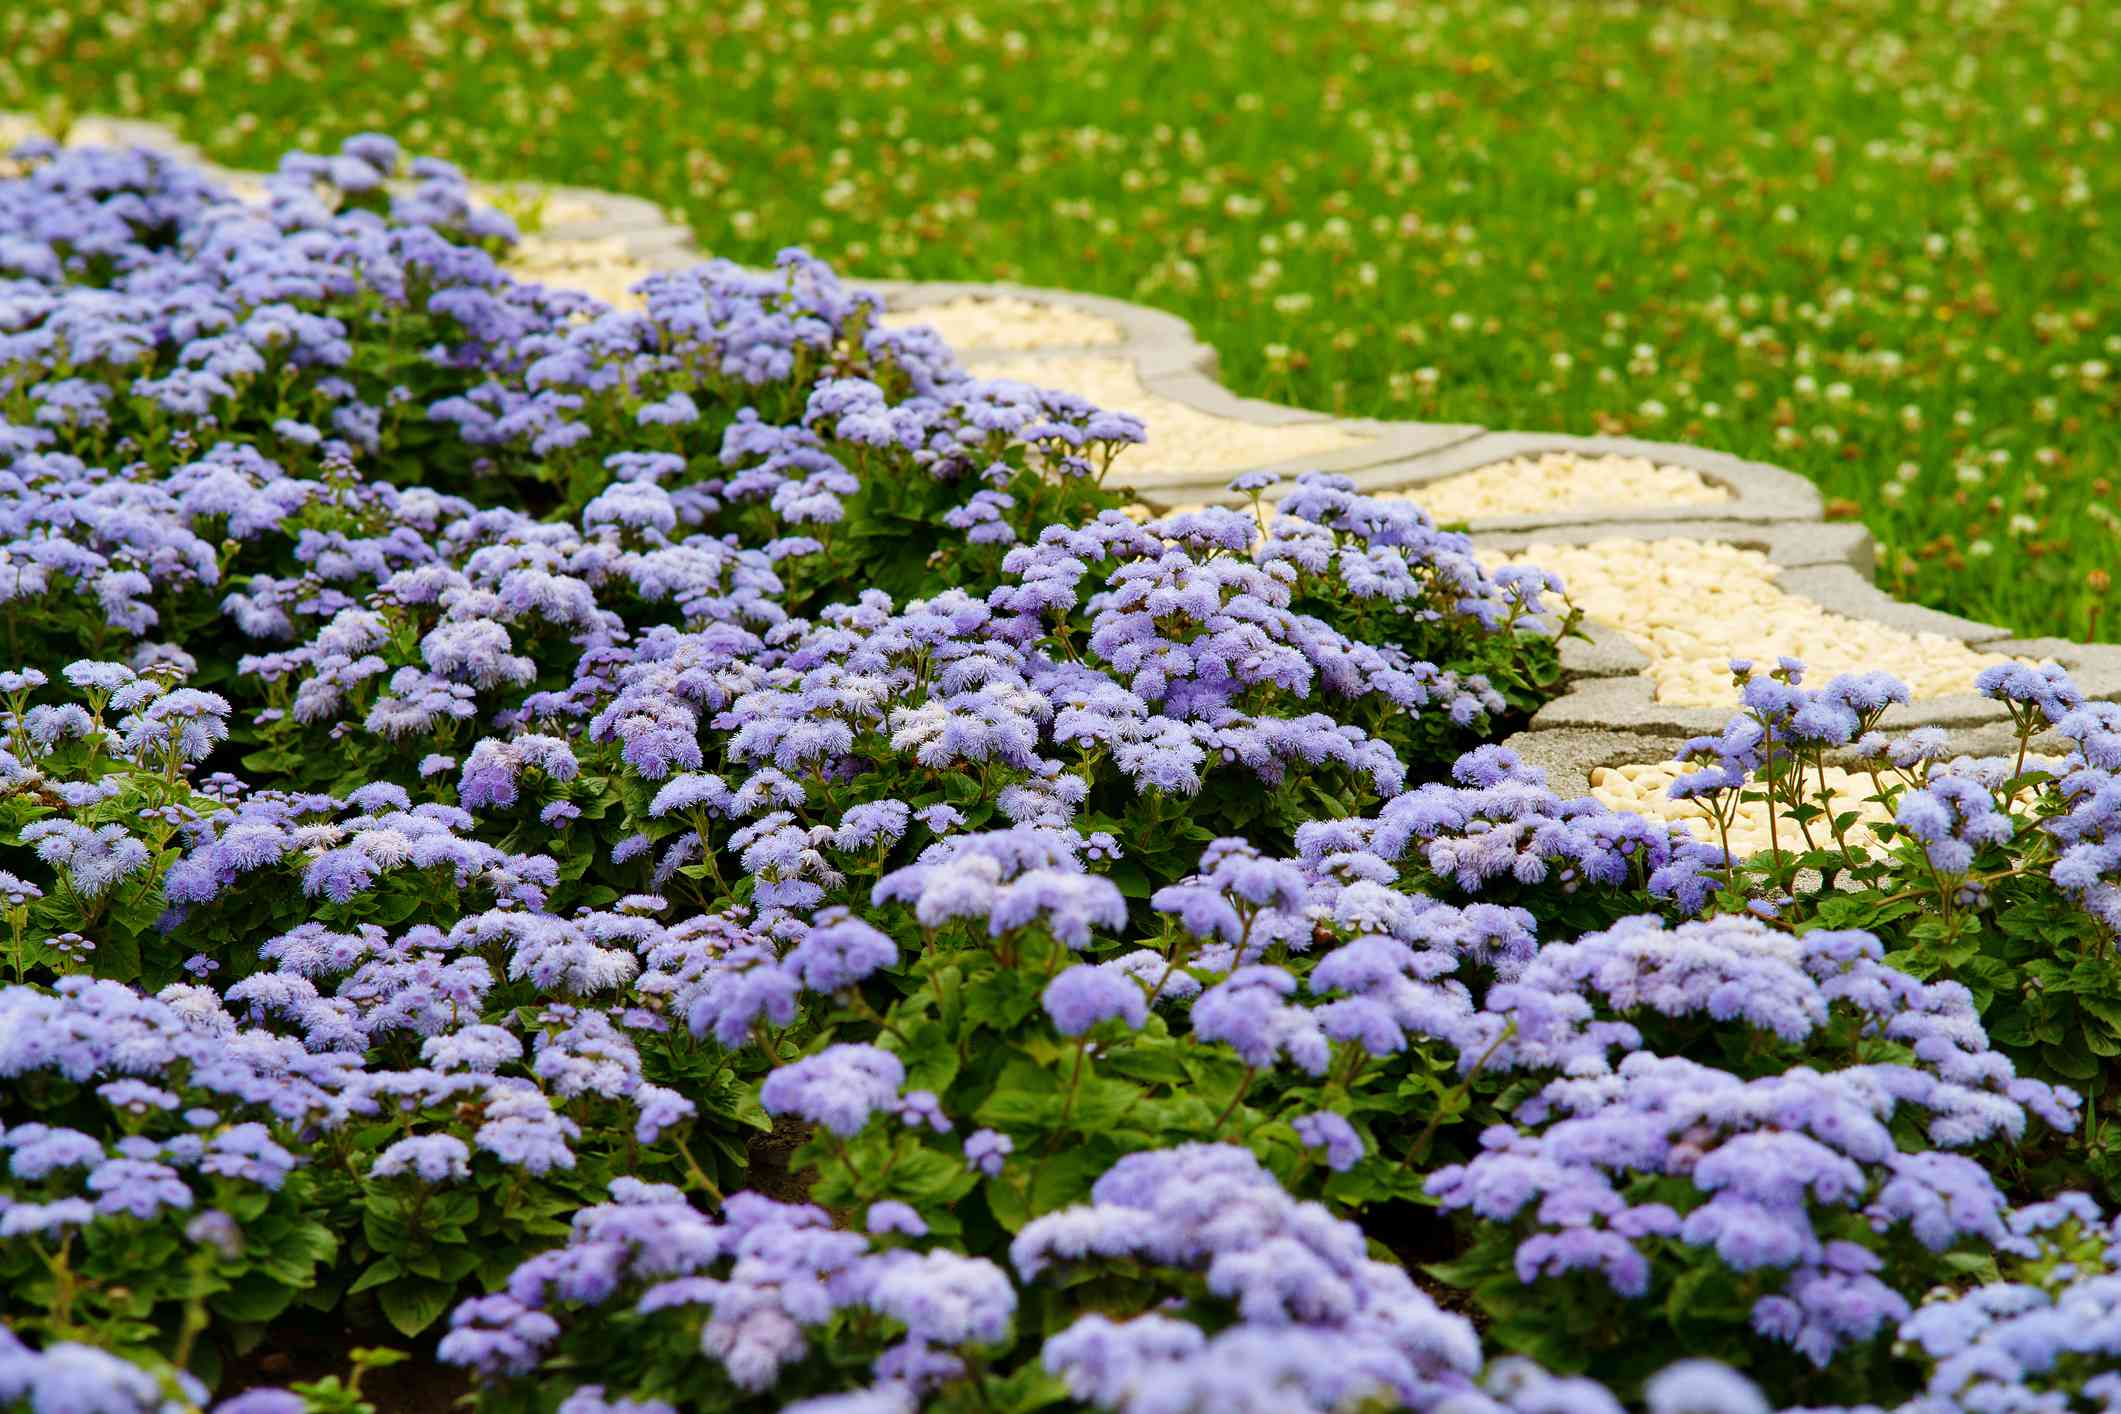 Purple ageratum flowers in the flowerbed.